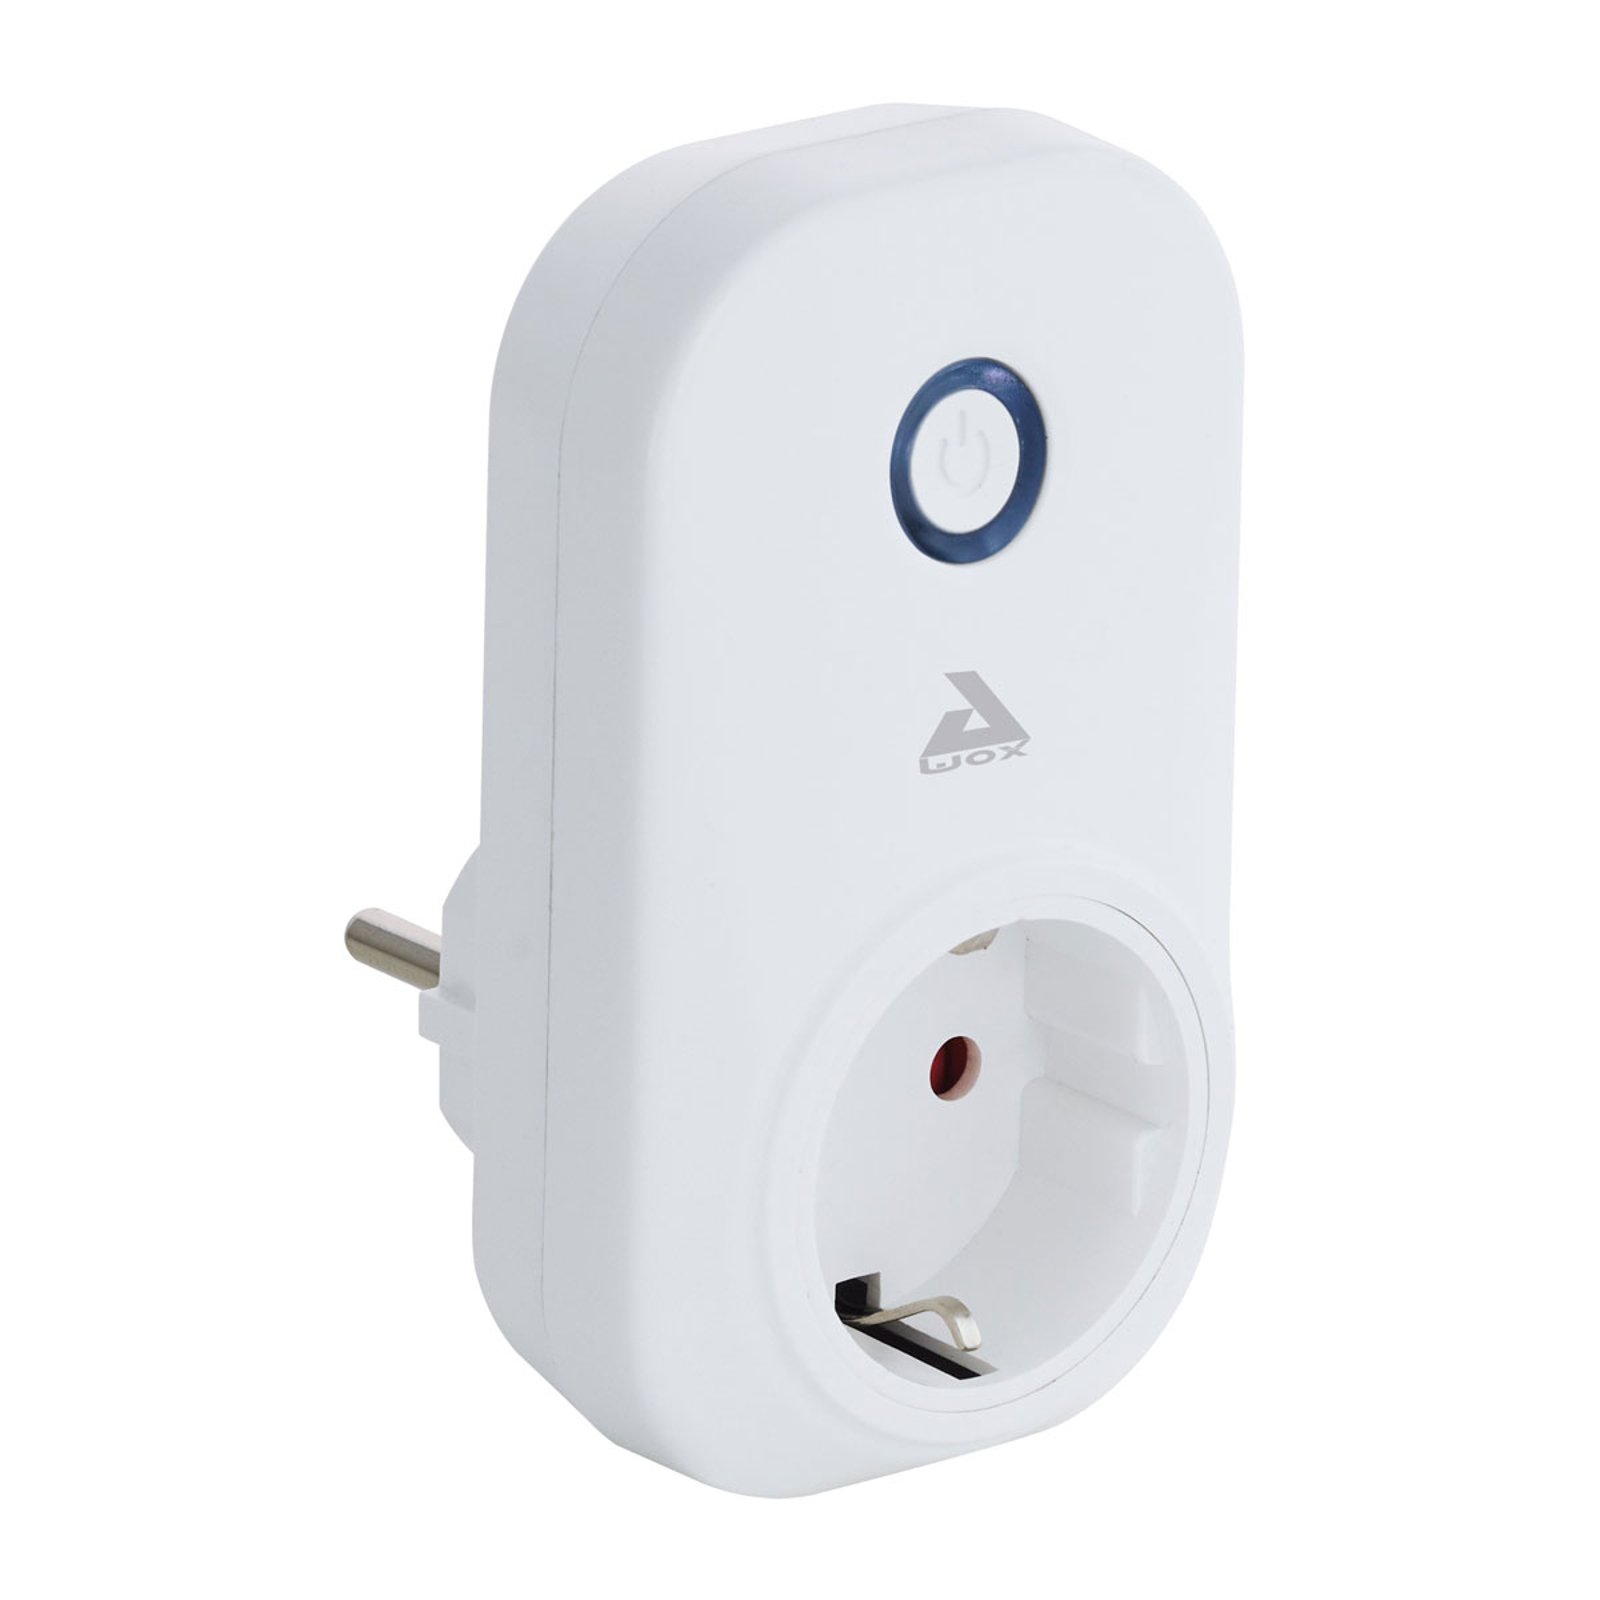 EGLO connect Plug Bluetooth-Steckdose